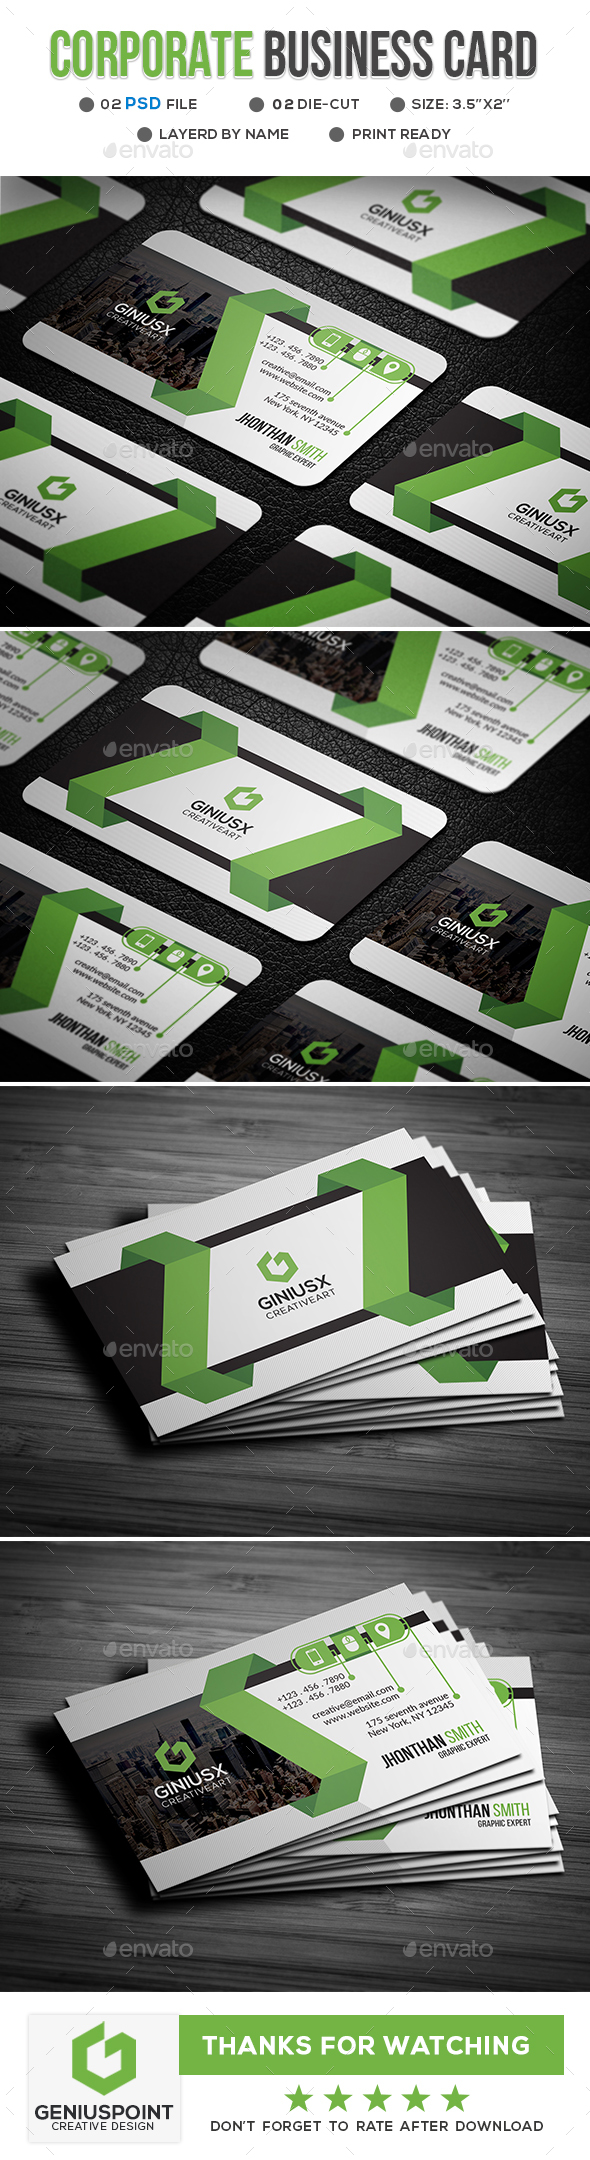 Business card templates designs from graphicriver reheart Image collections